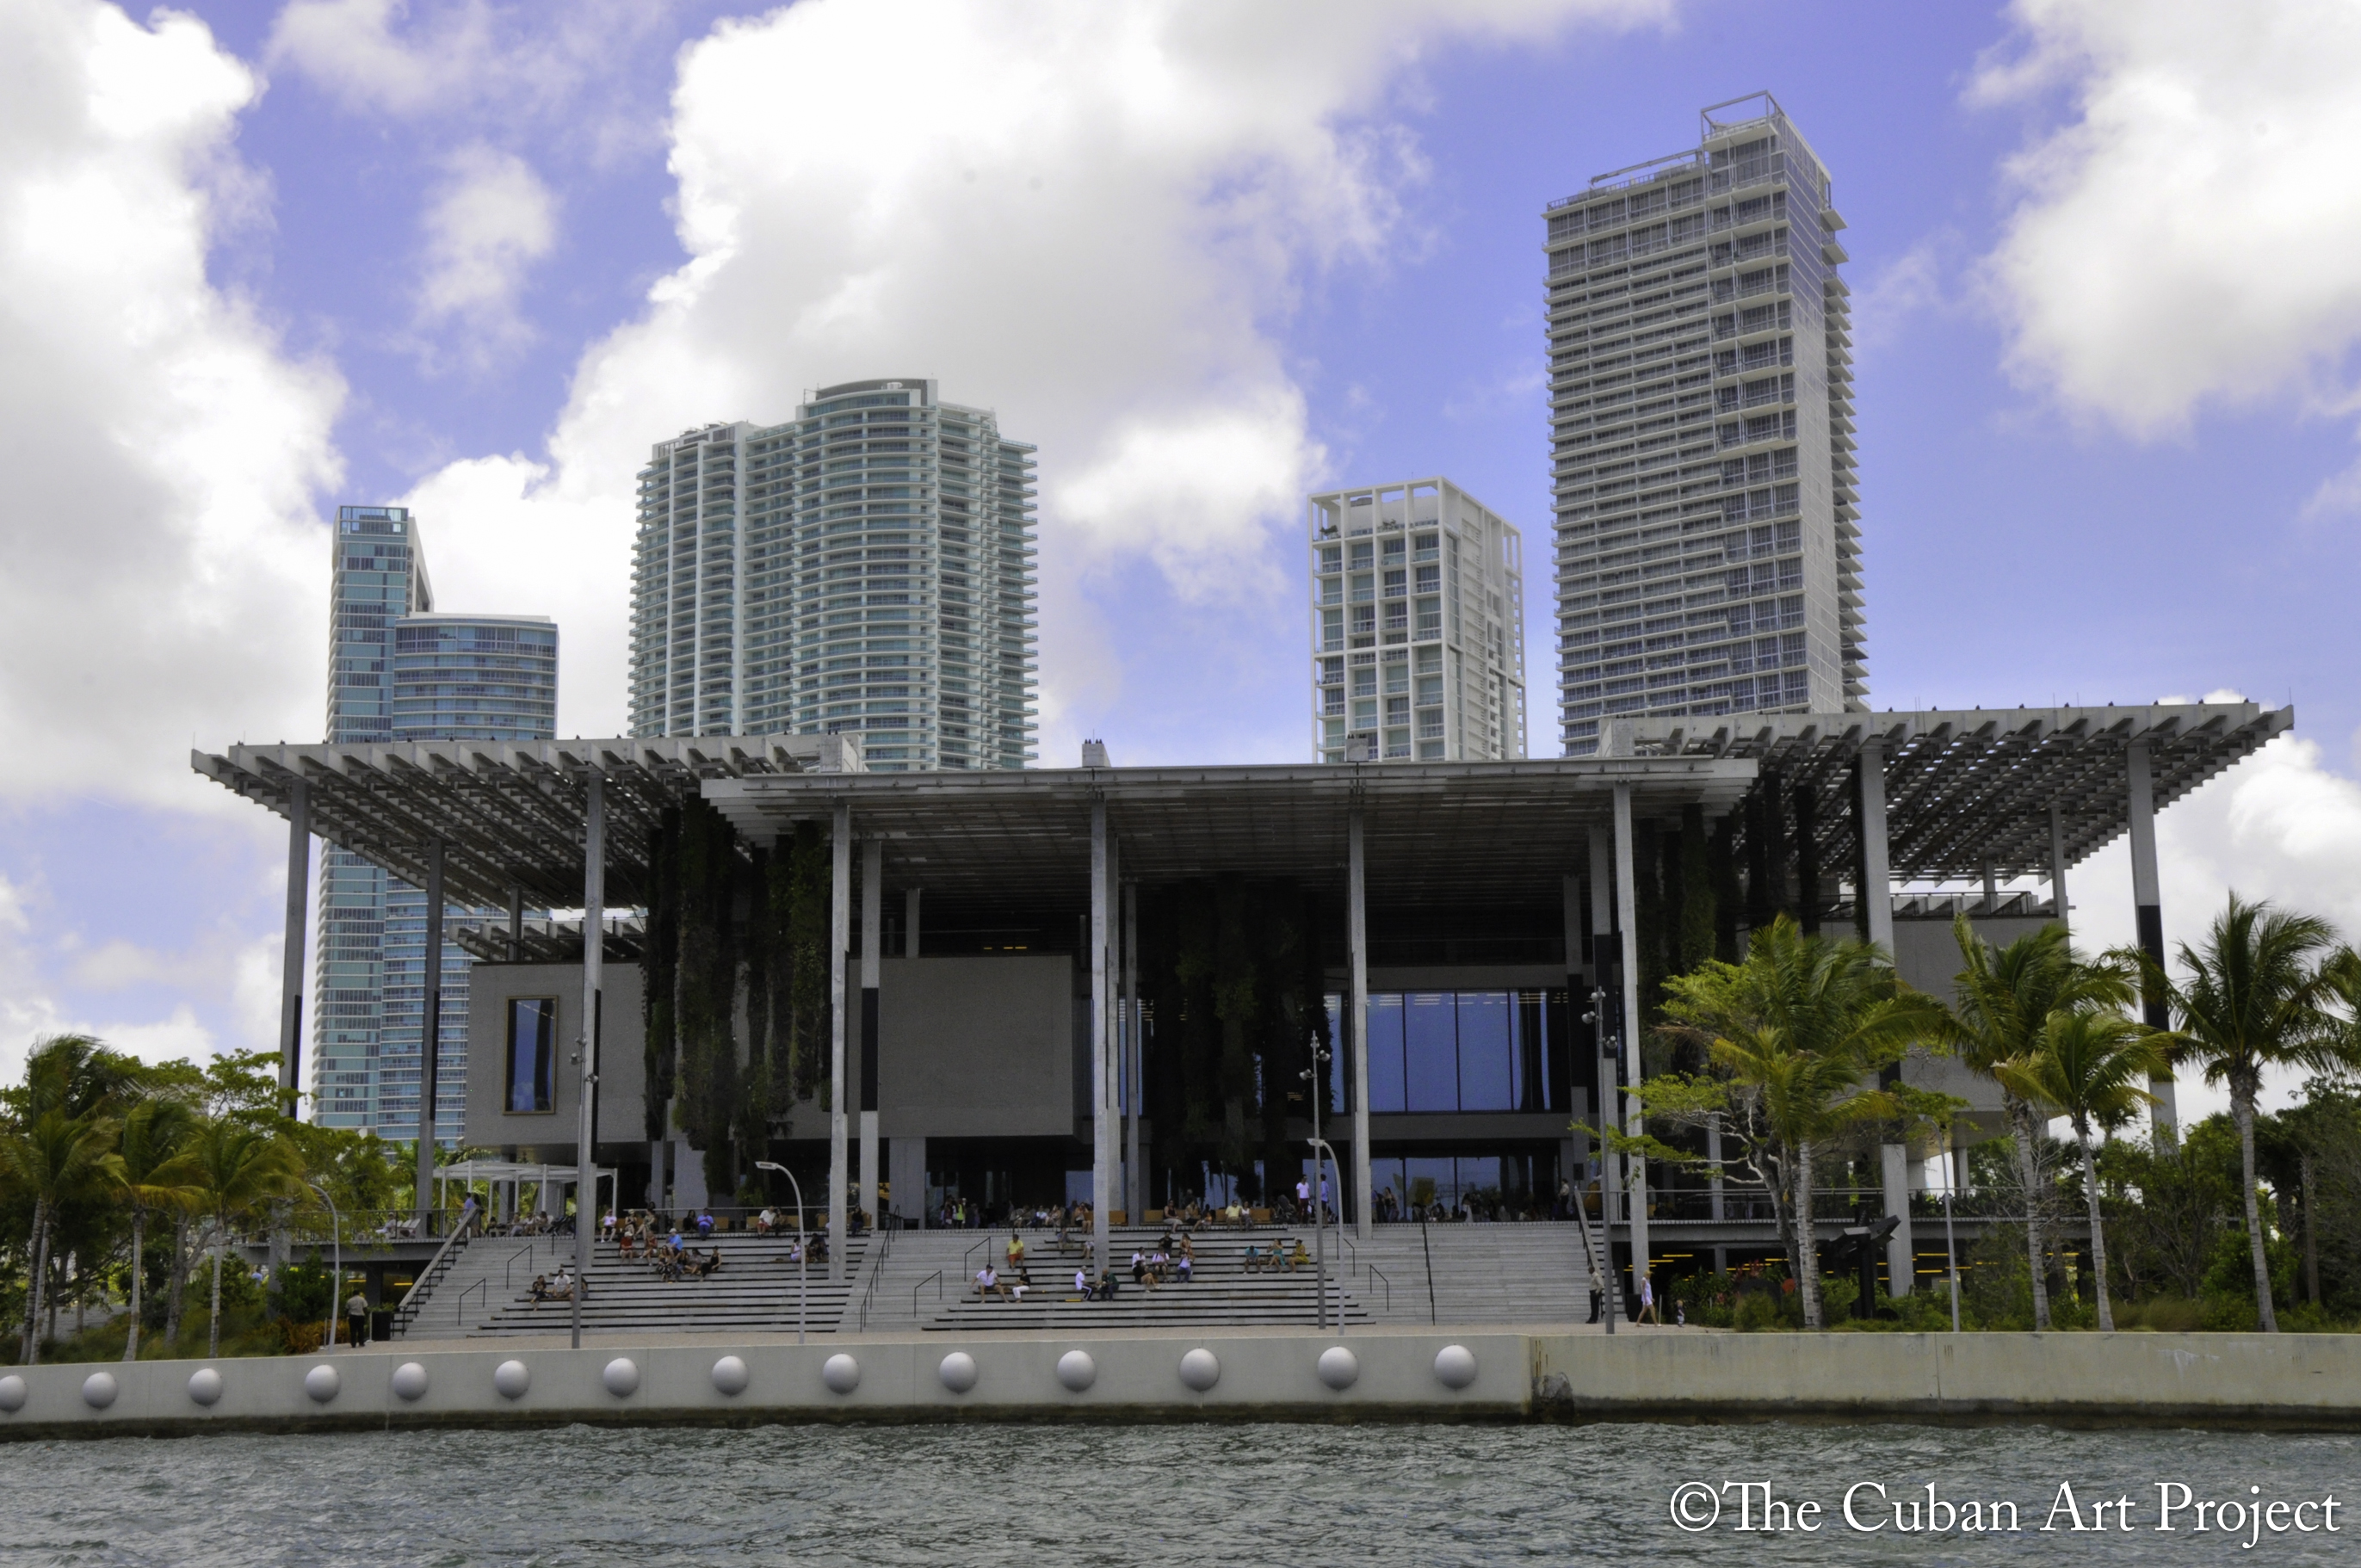 SOUTH FLORIDA MUSEUMS